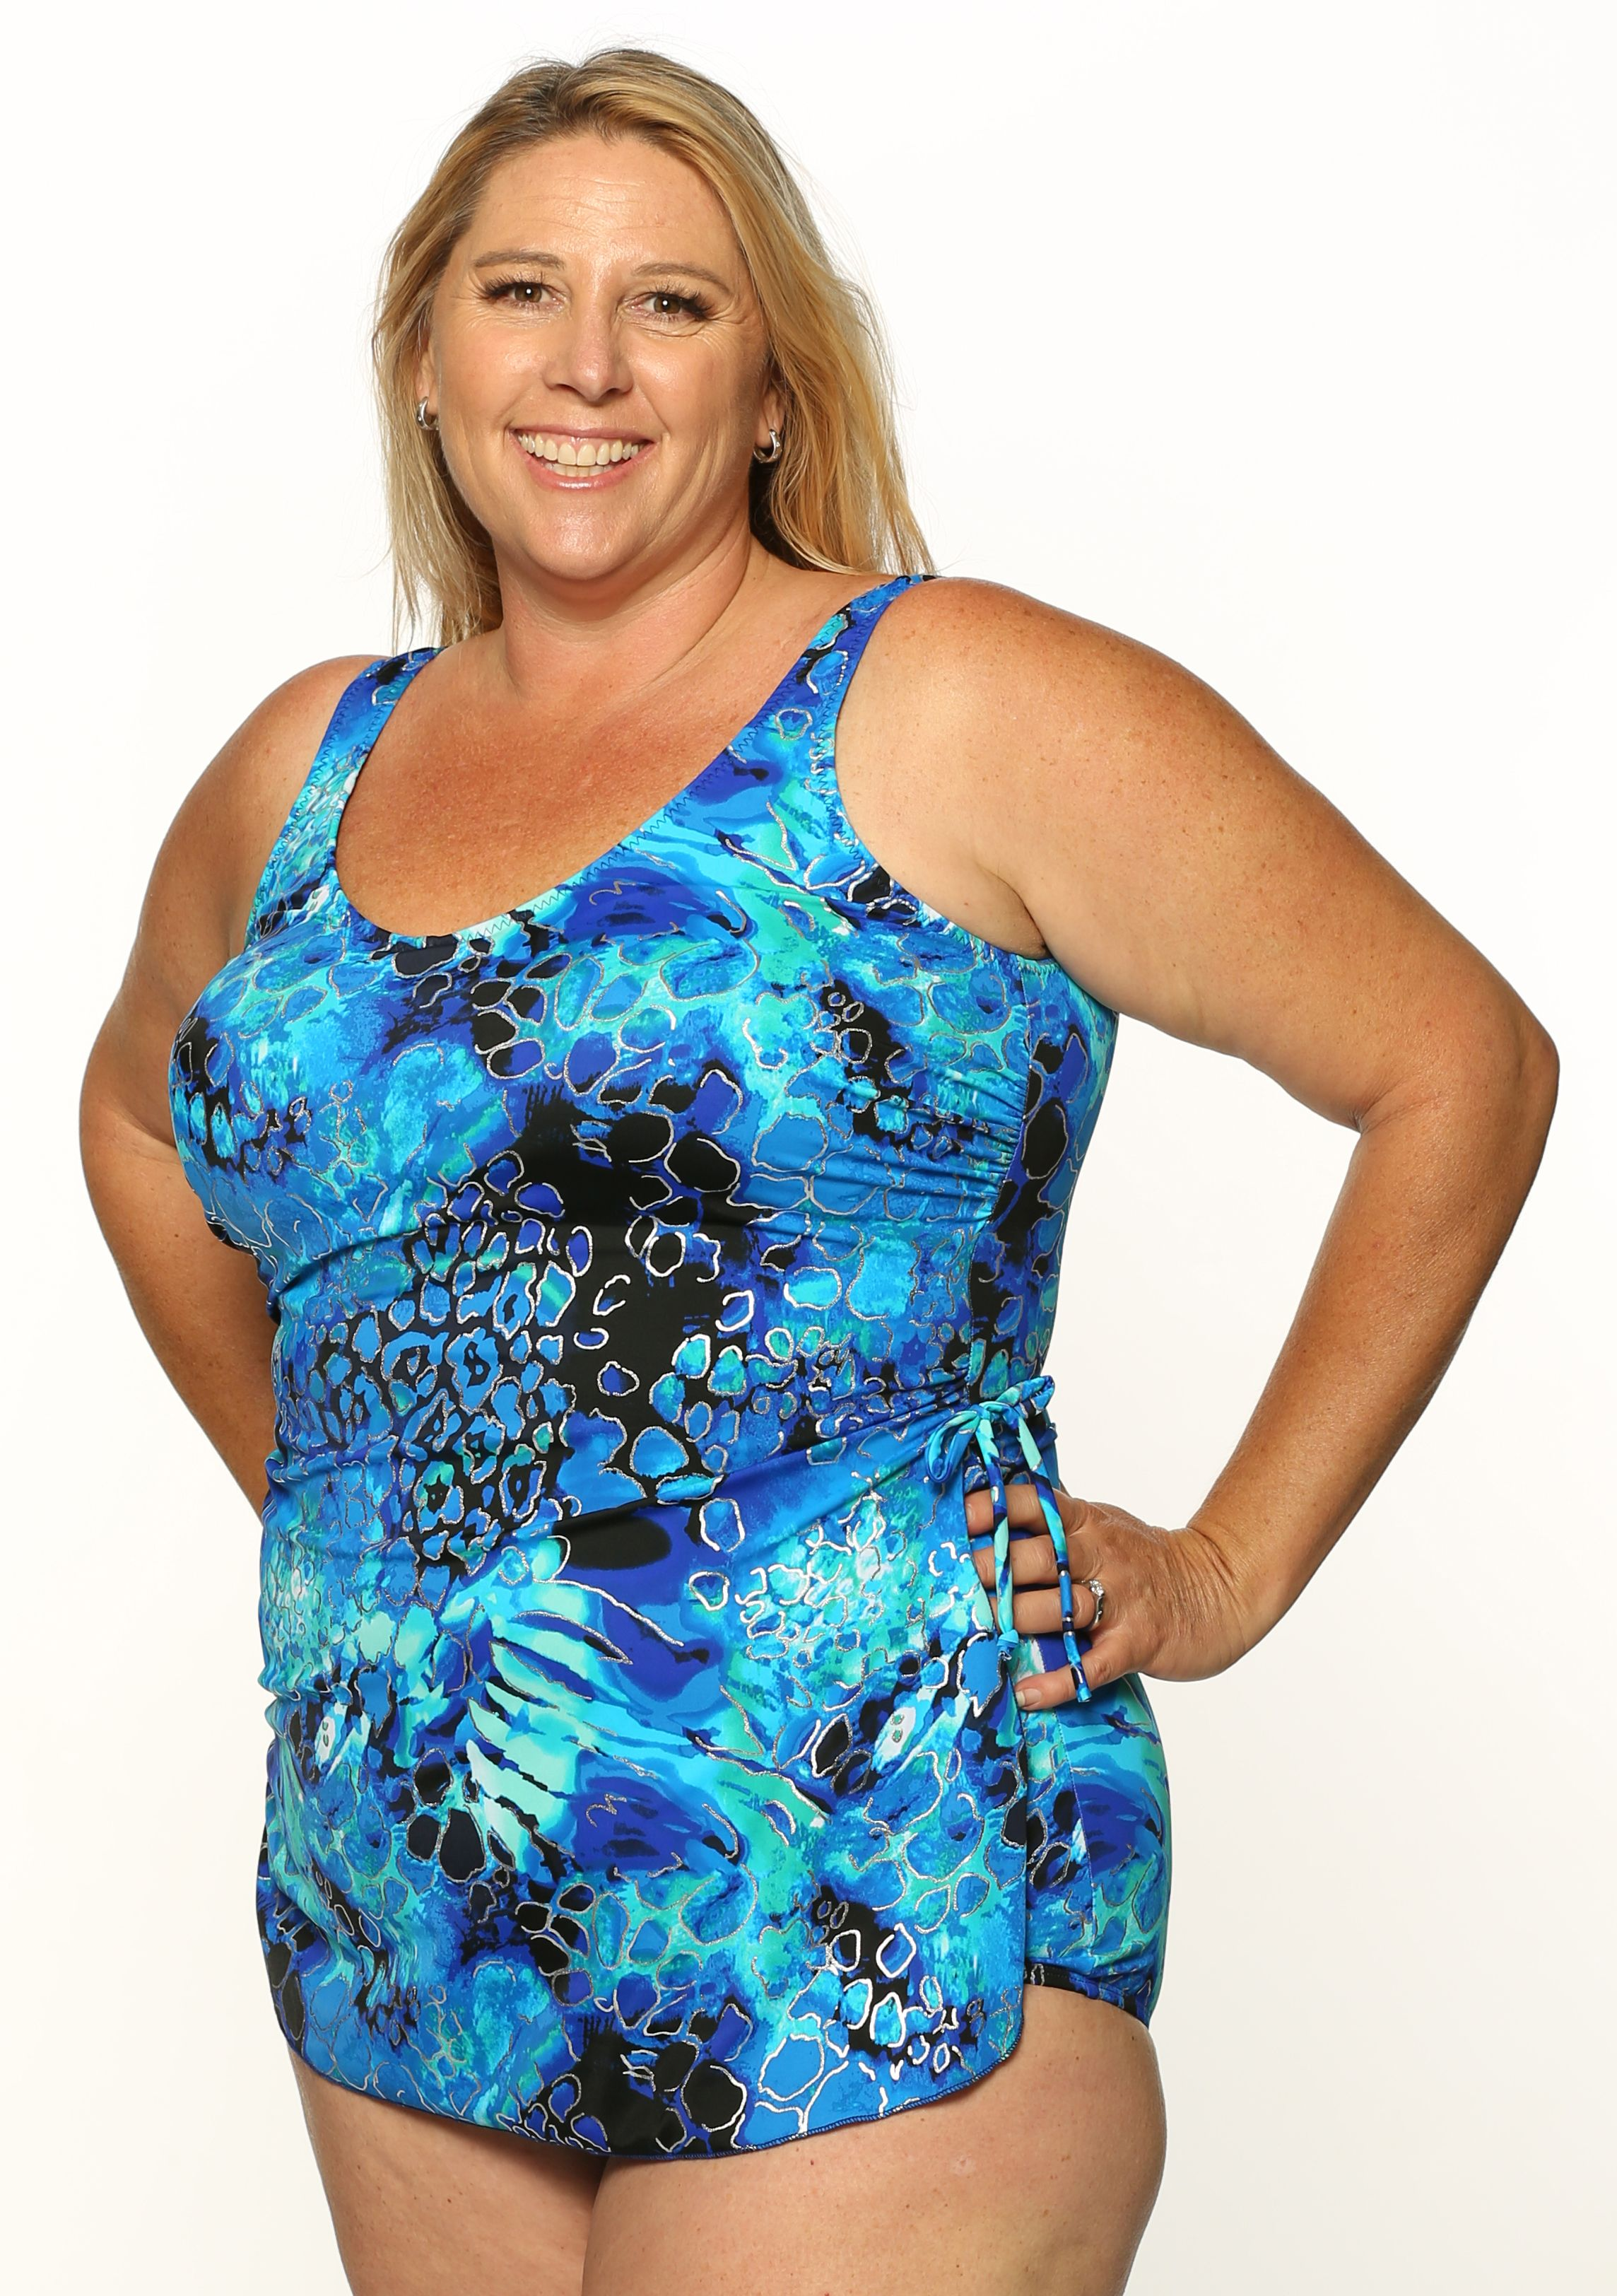 867879897f0 Style THE 965-80/746 - T.H.E. Mastectomy Sarong Bathing Suit with Pocketed  Bra